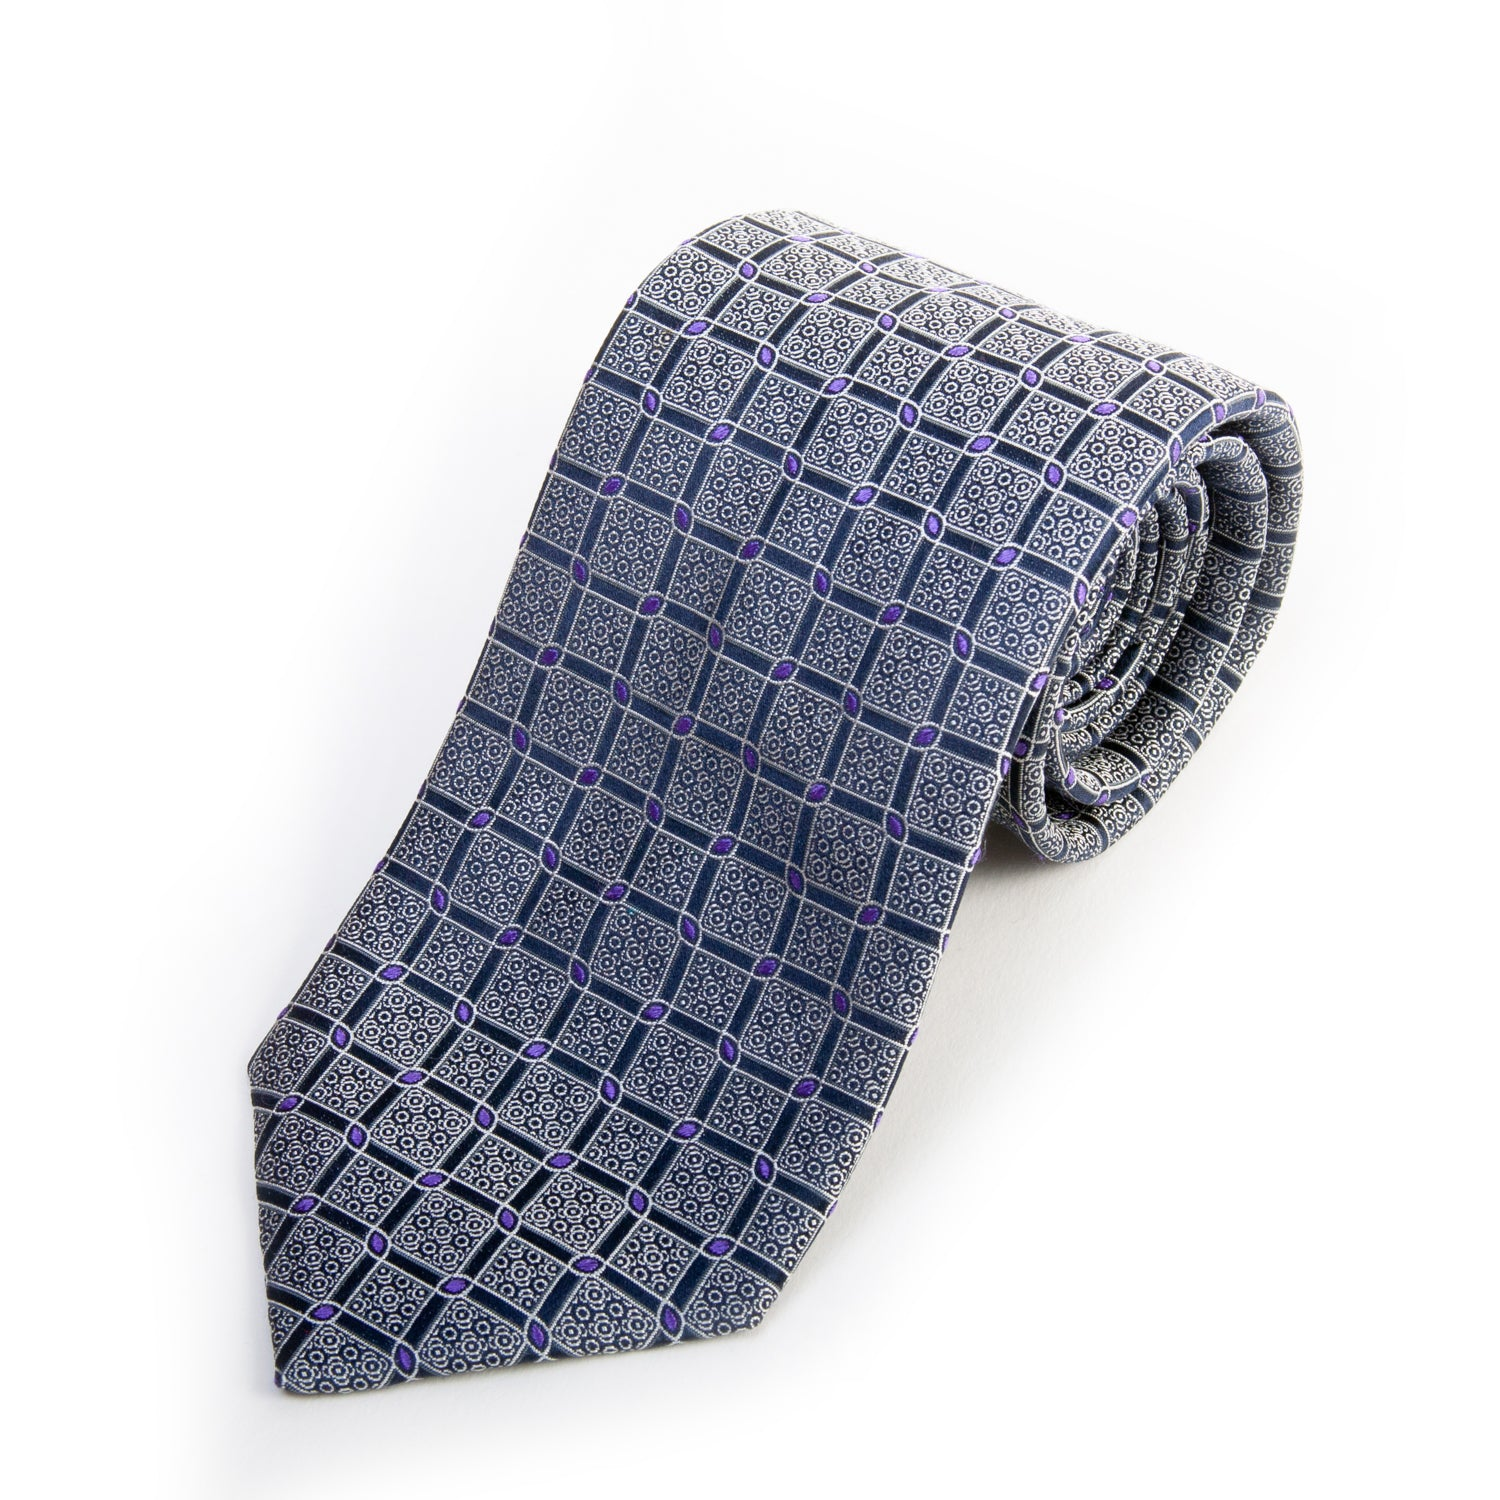 Canali Lilac on Navy Blue Geometric Patterned Silk Tie for Luxmrkt.com Menswear Consignment Edmonton